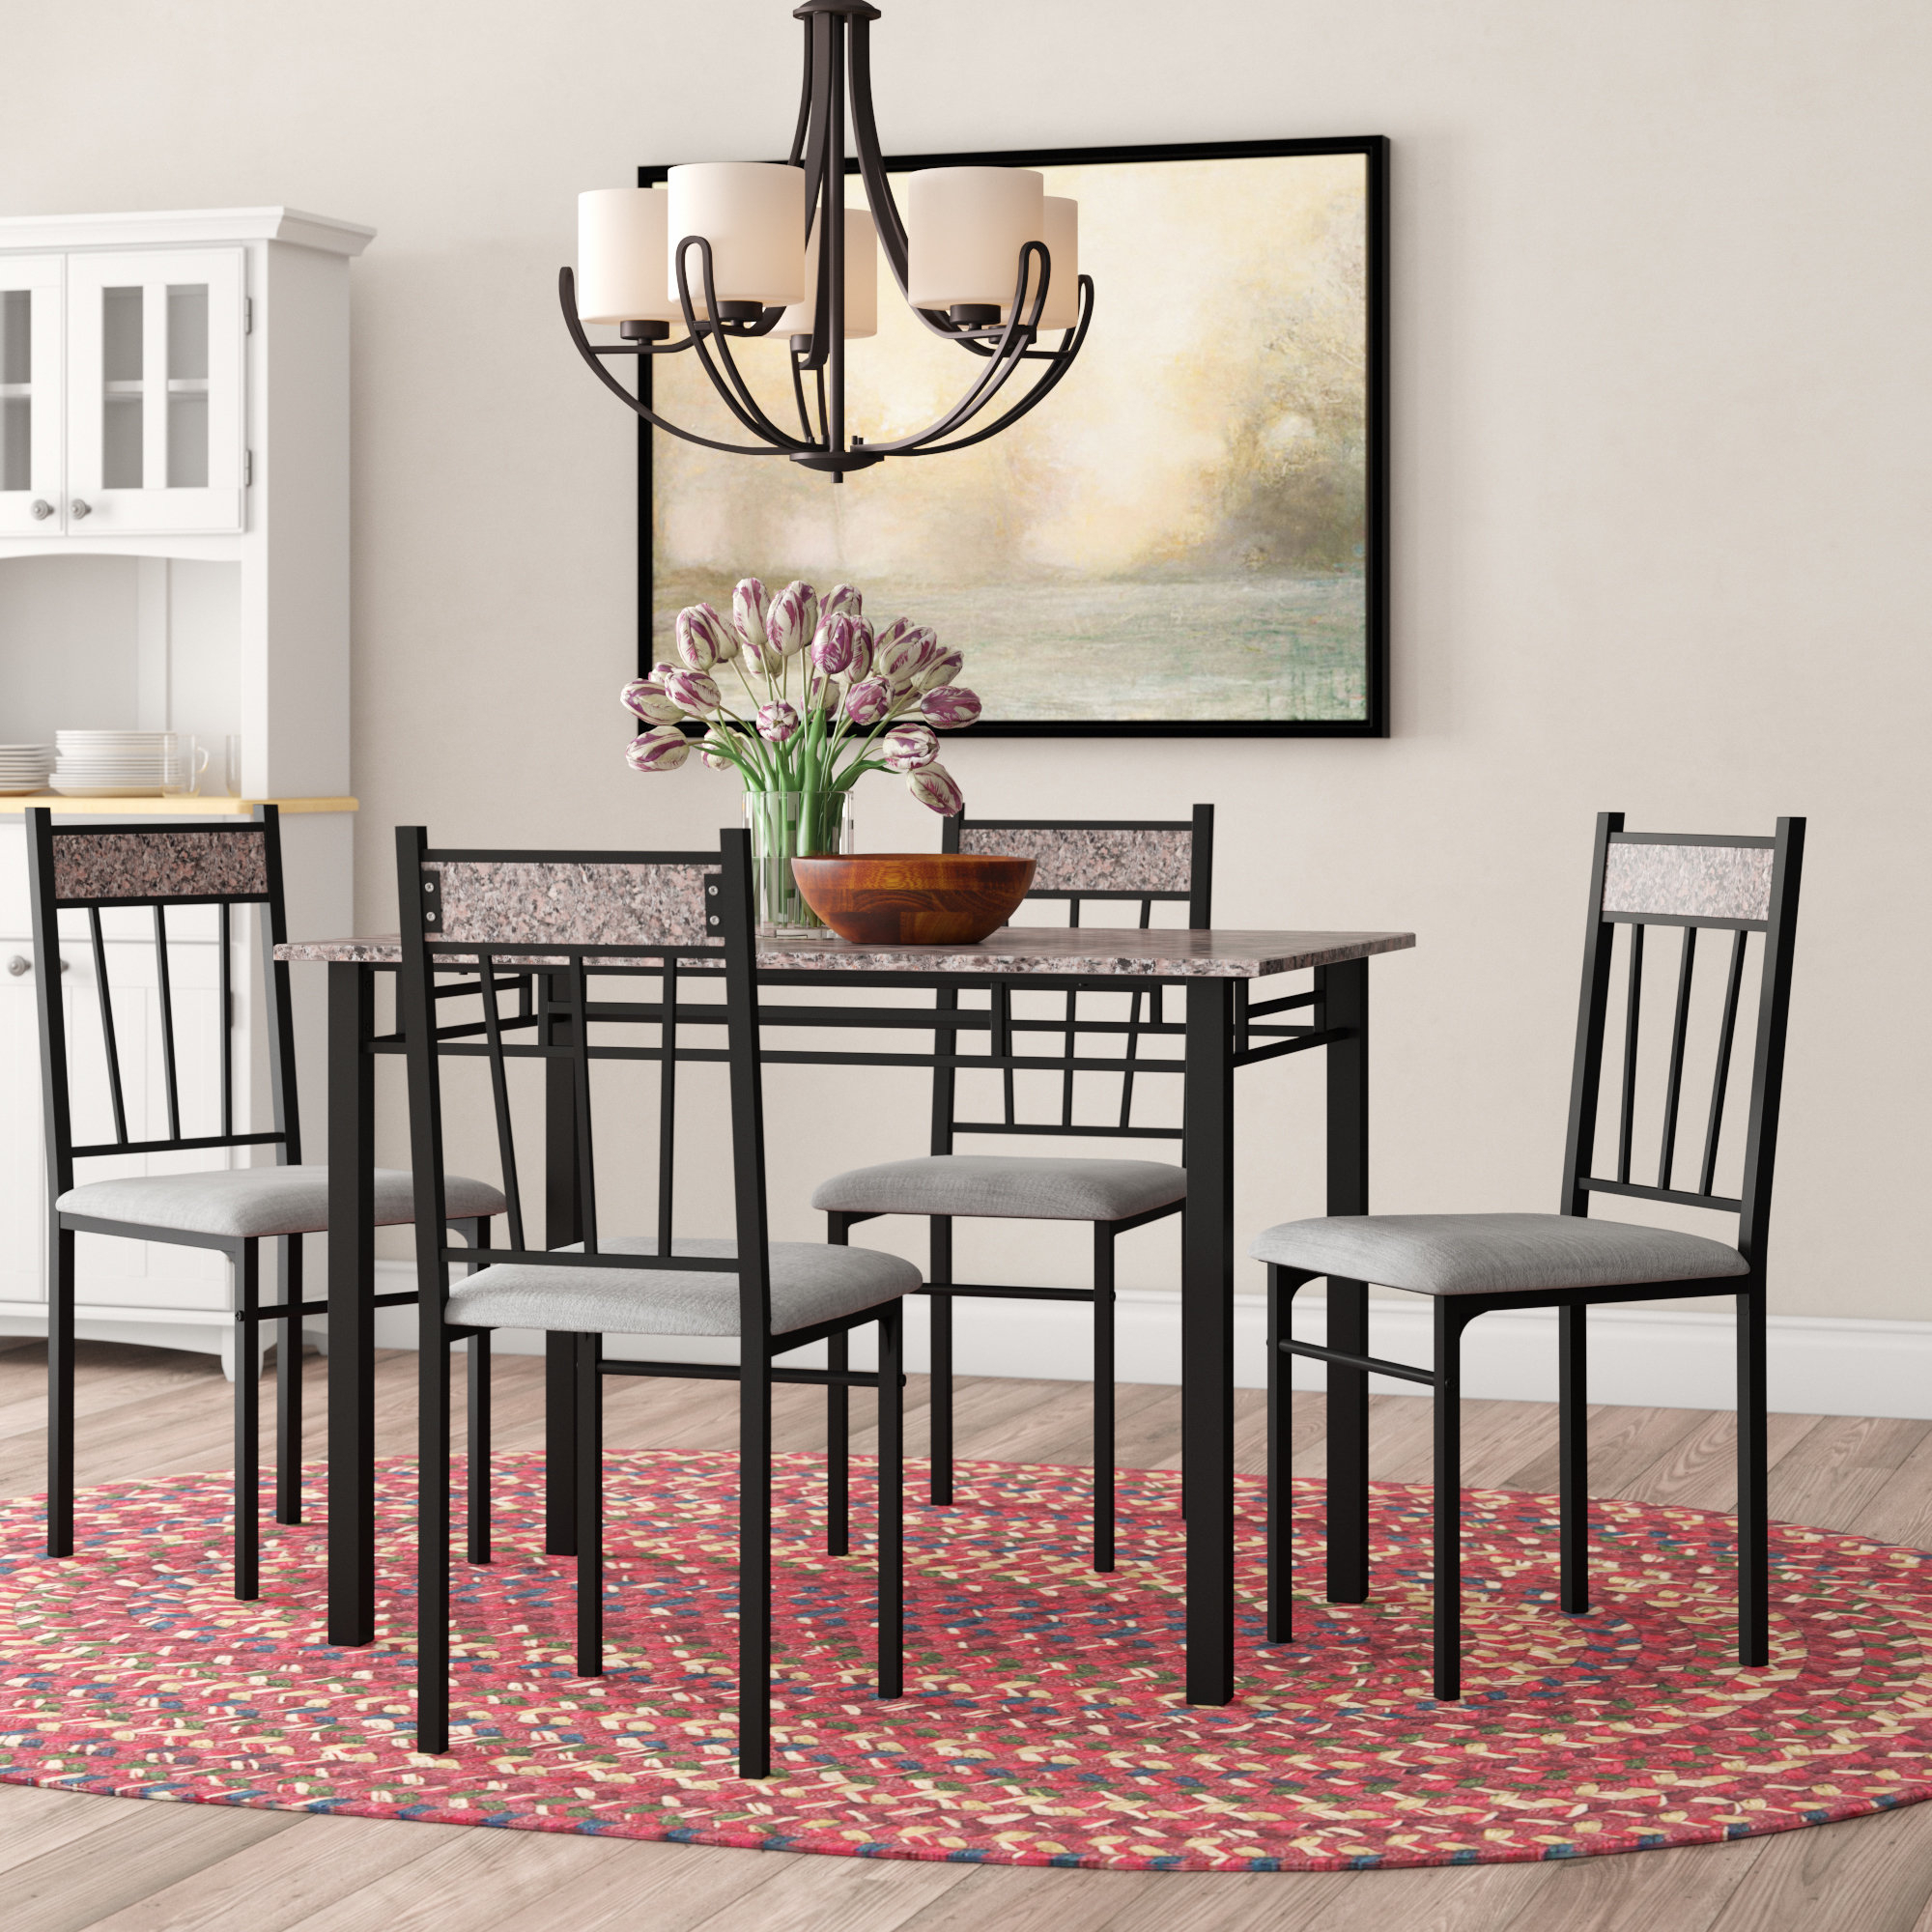 Conover 5 Piece Dining Sets With Regard To Most Current Winston Porter Caspar 5 Piece Dining Set & Reviews (View 9 of 25)